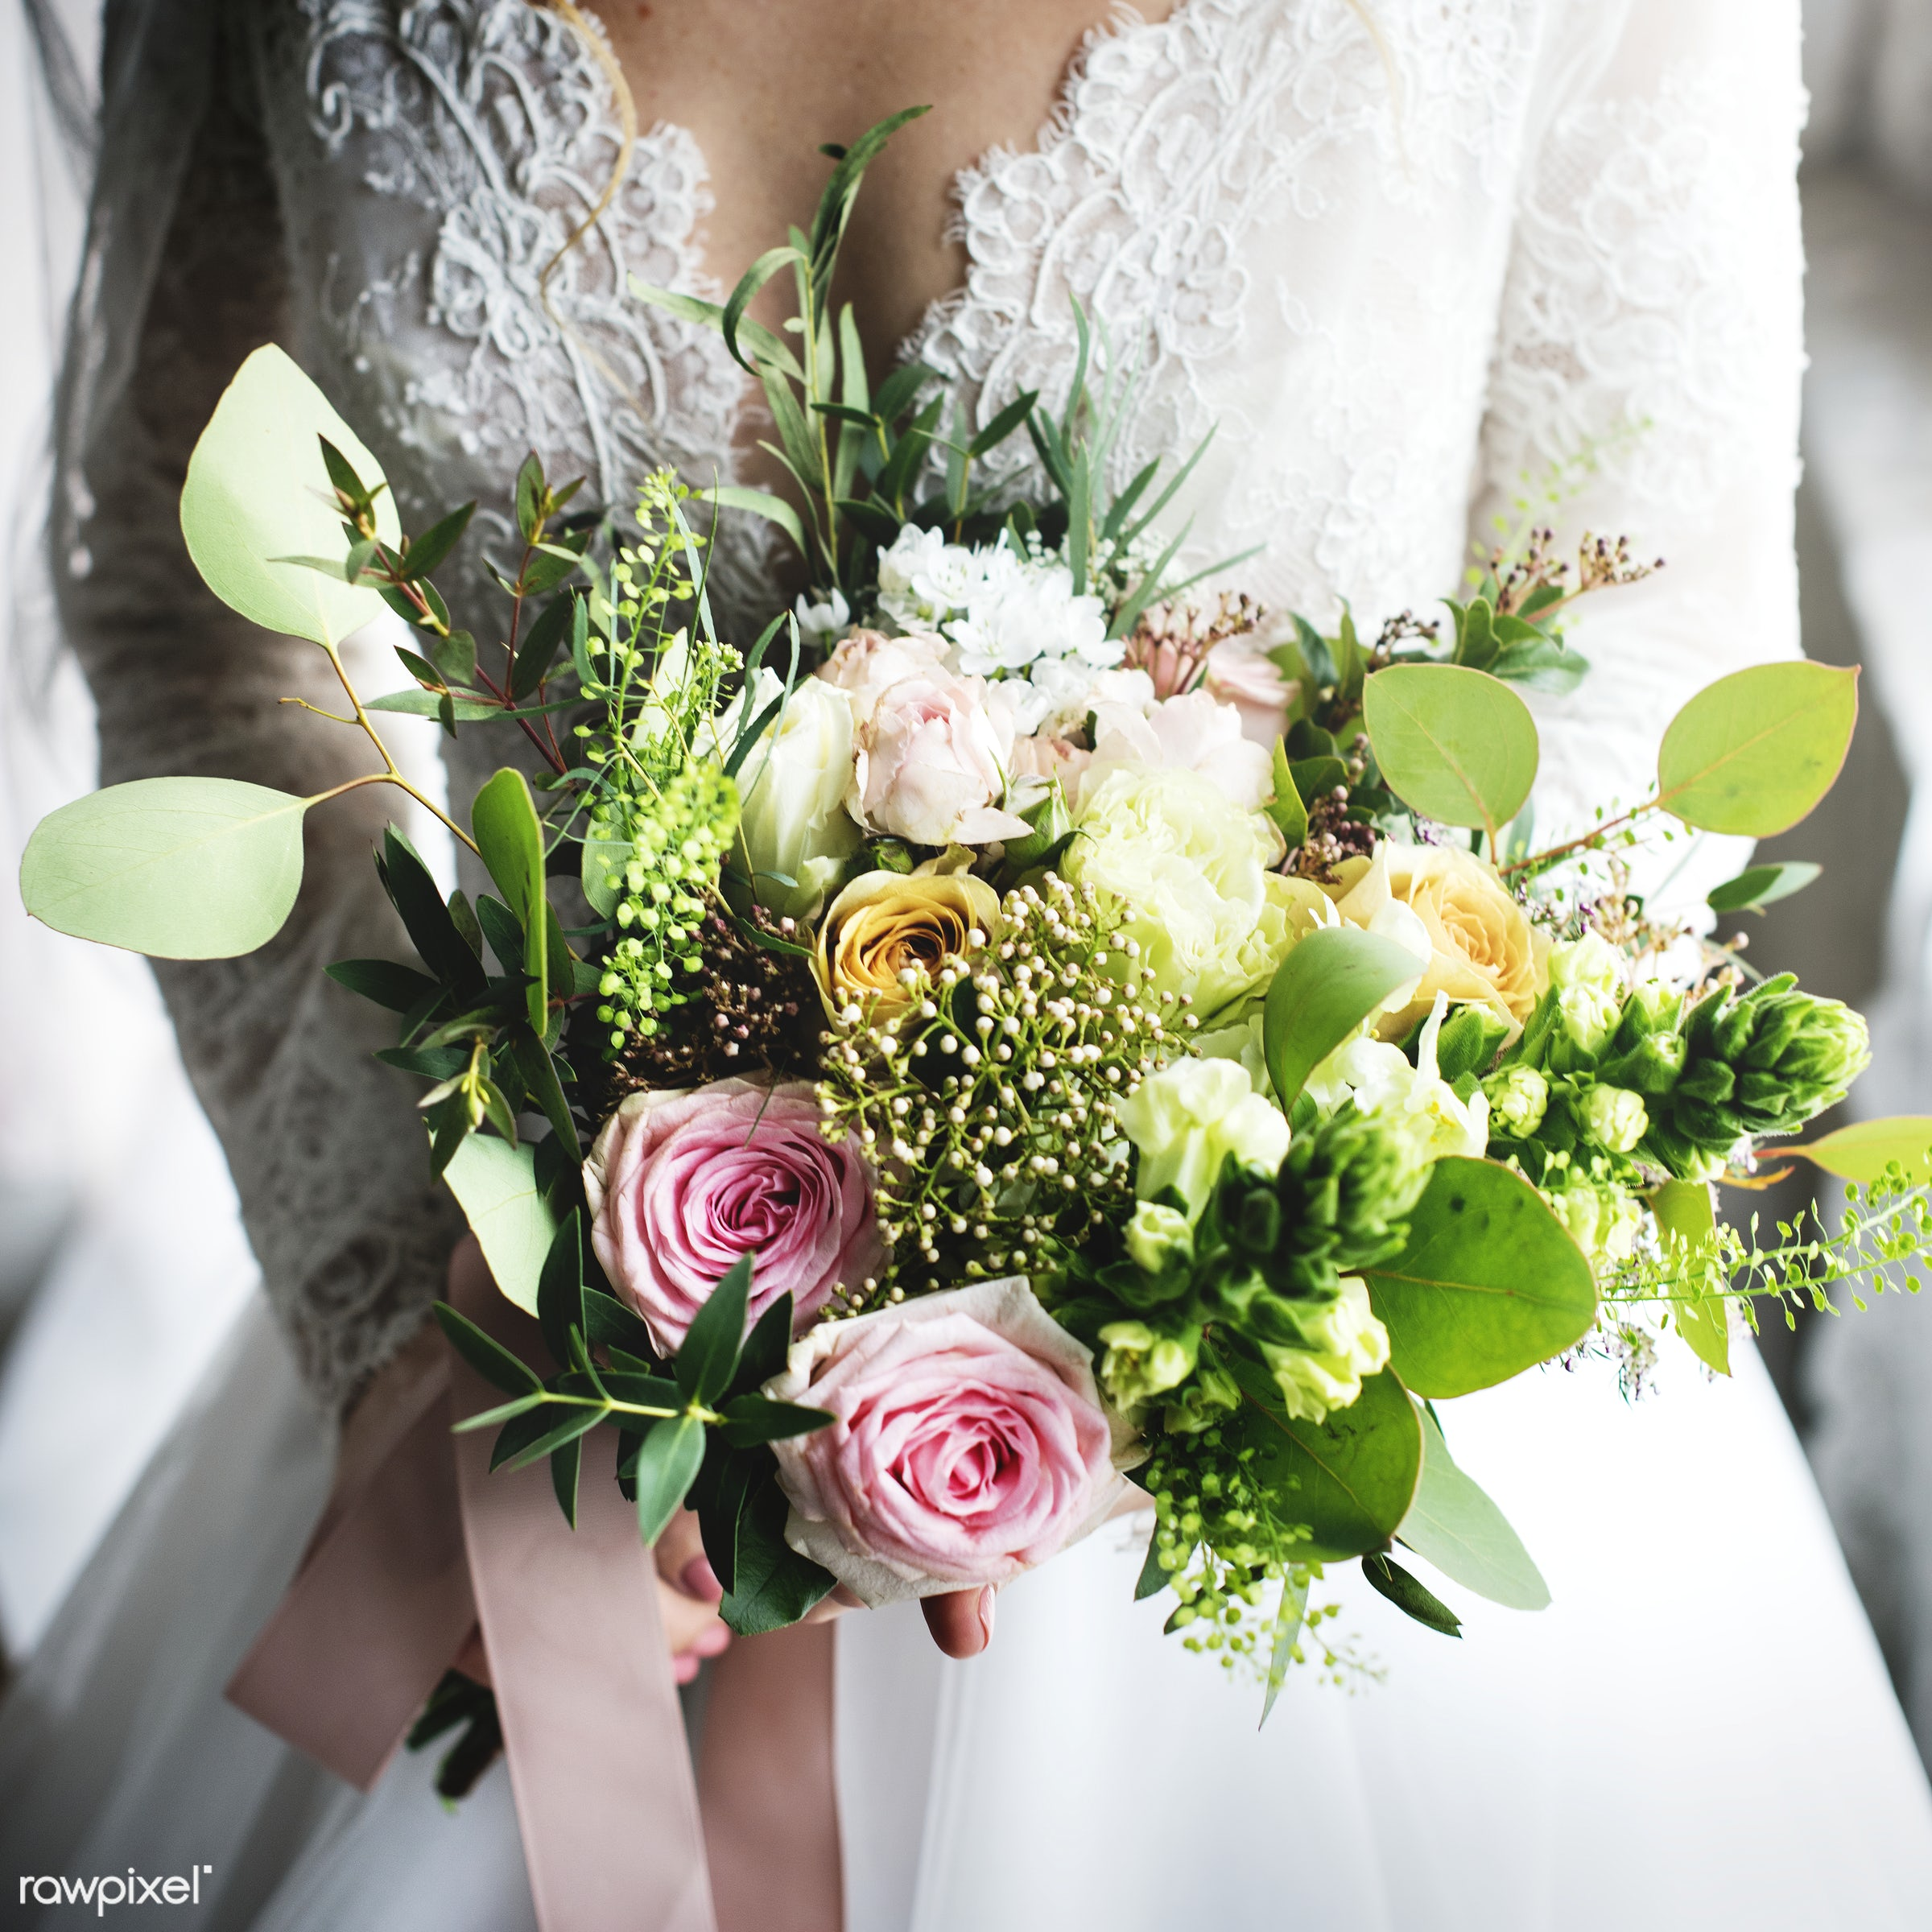 Attractive Beautiful Bride Holding Flowers Bouquet - bouquet, person, holding, people, caucasian, glamour, love, woman, gown...